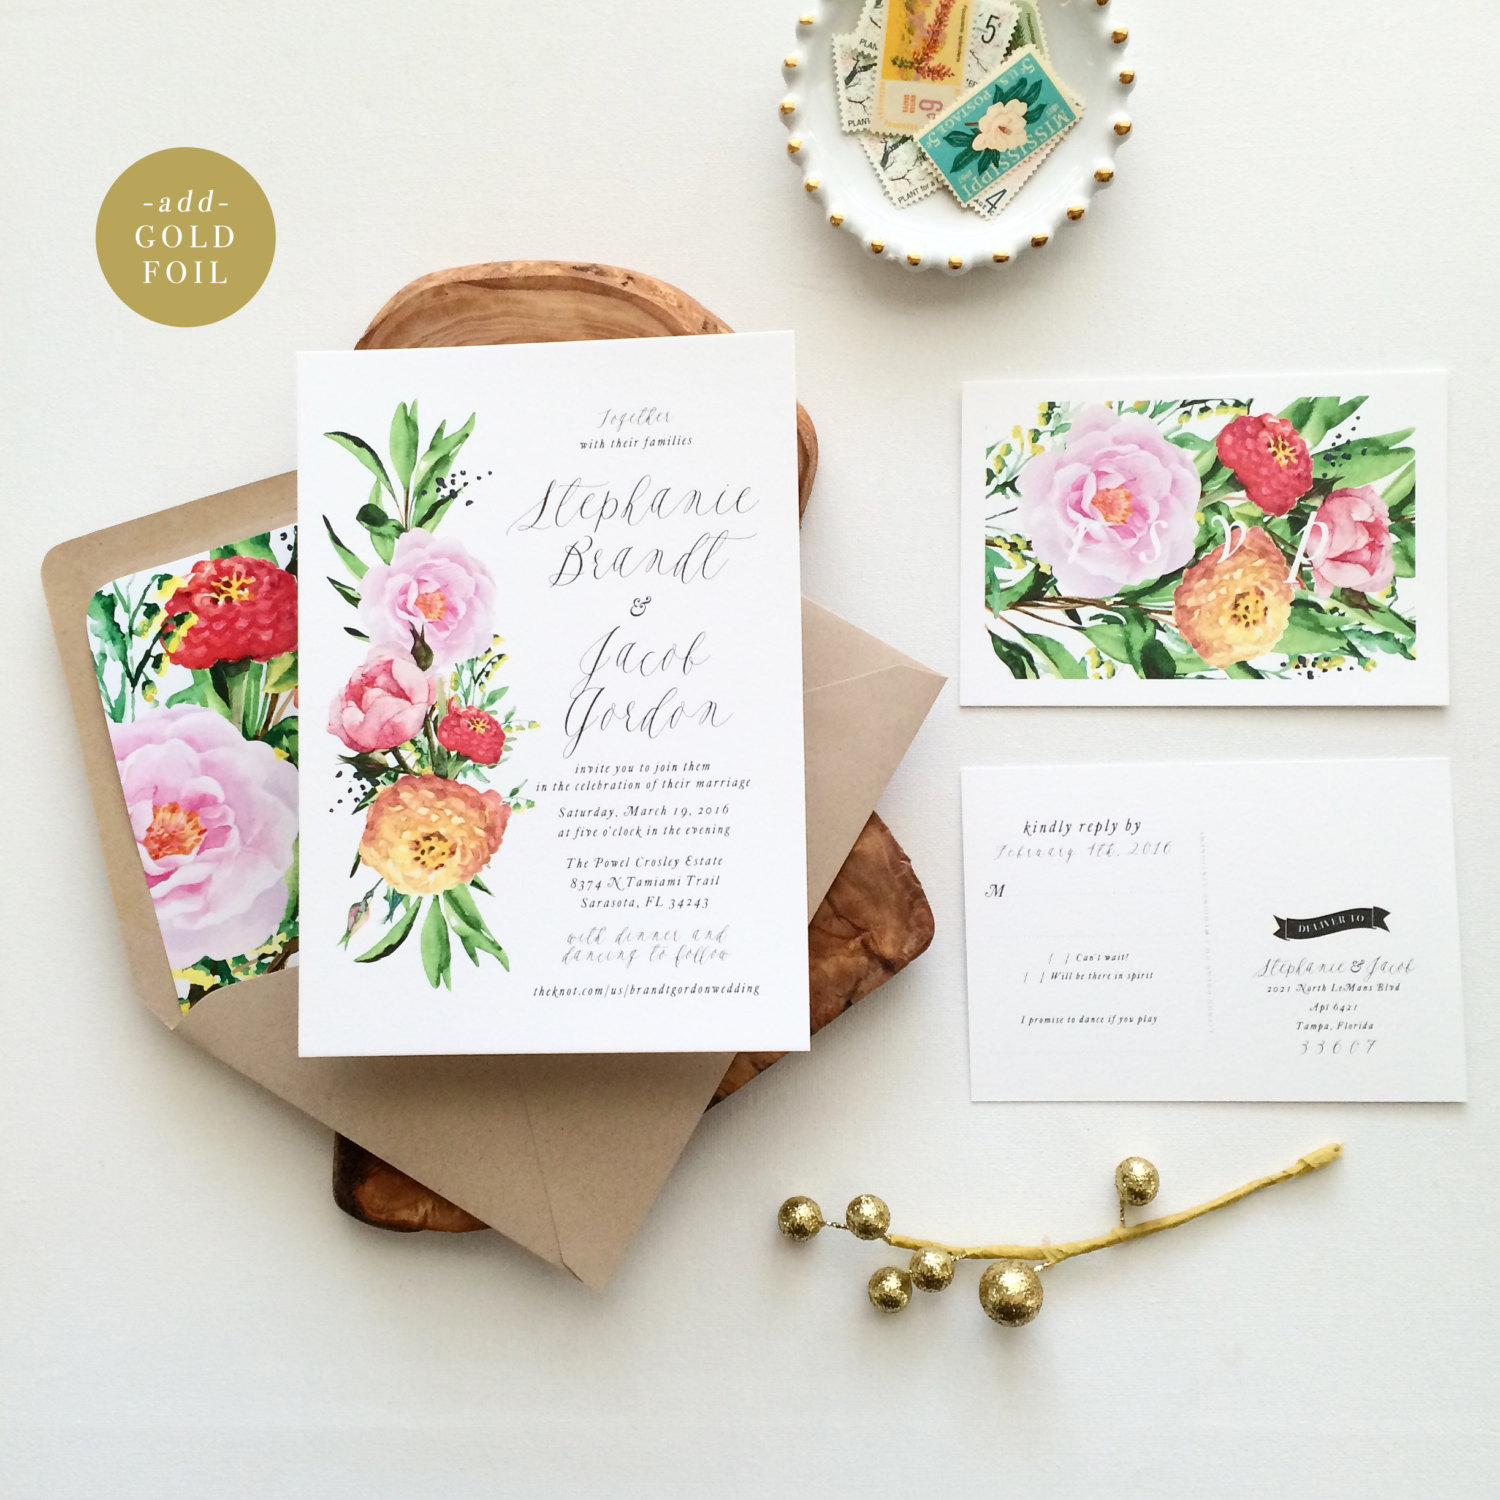 spring watercolor botanical wedding invitations | 6 Floral Botanical Invitations for Spring Weddings http://wp.me/p1g0if-yOx by Citrus Press Co.